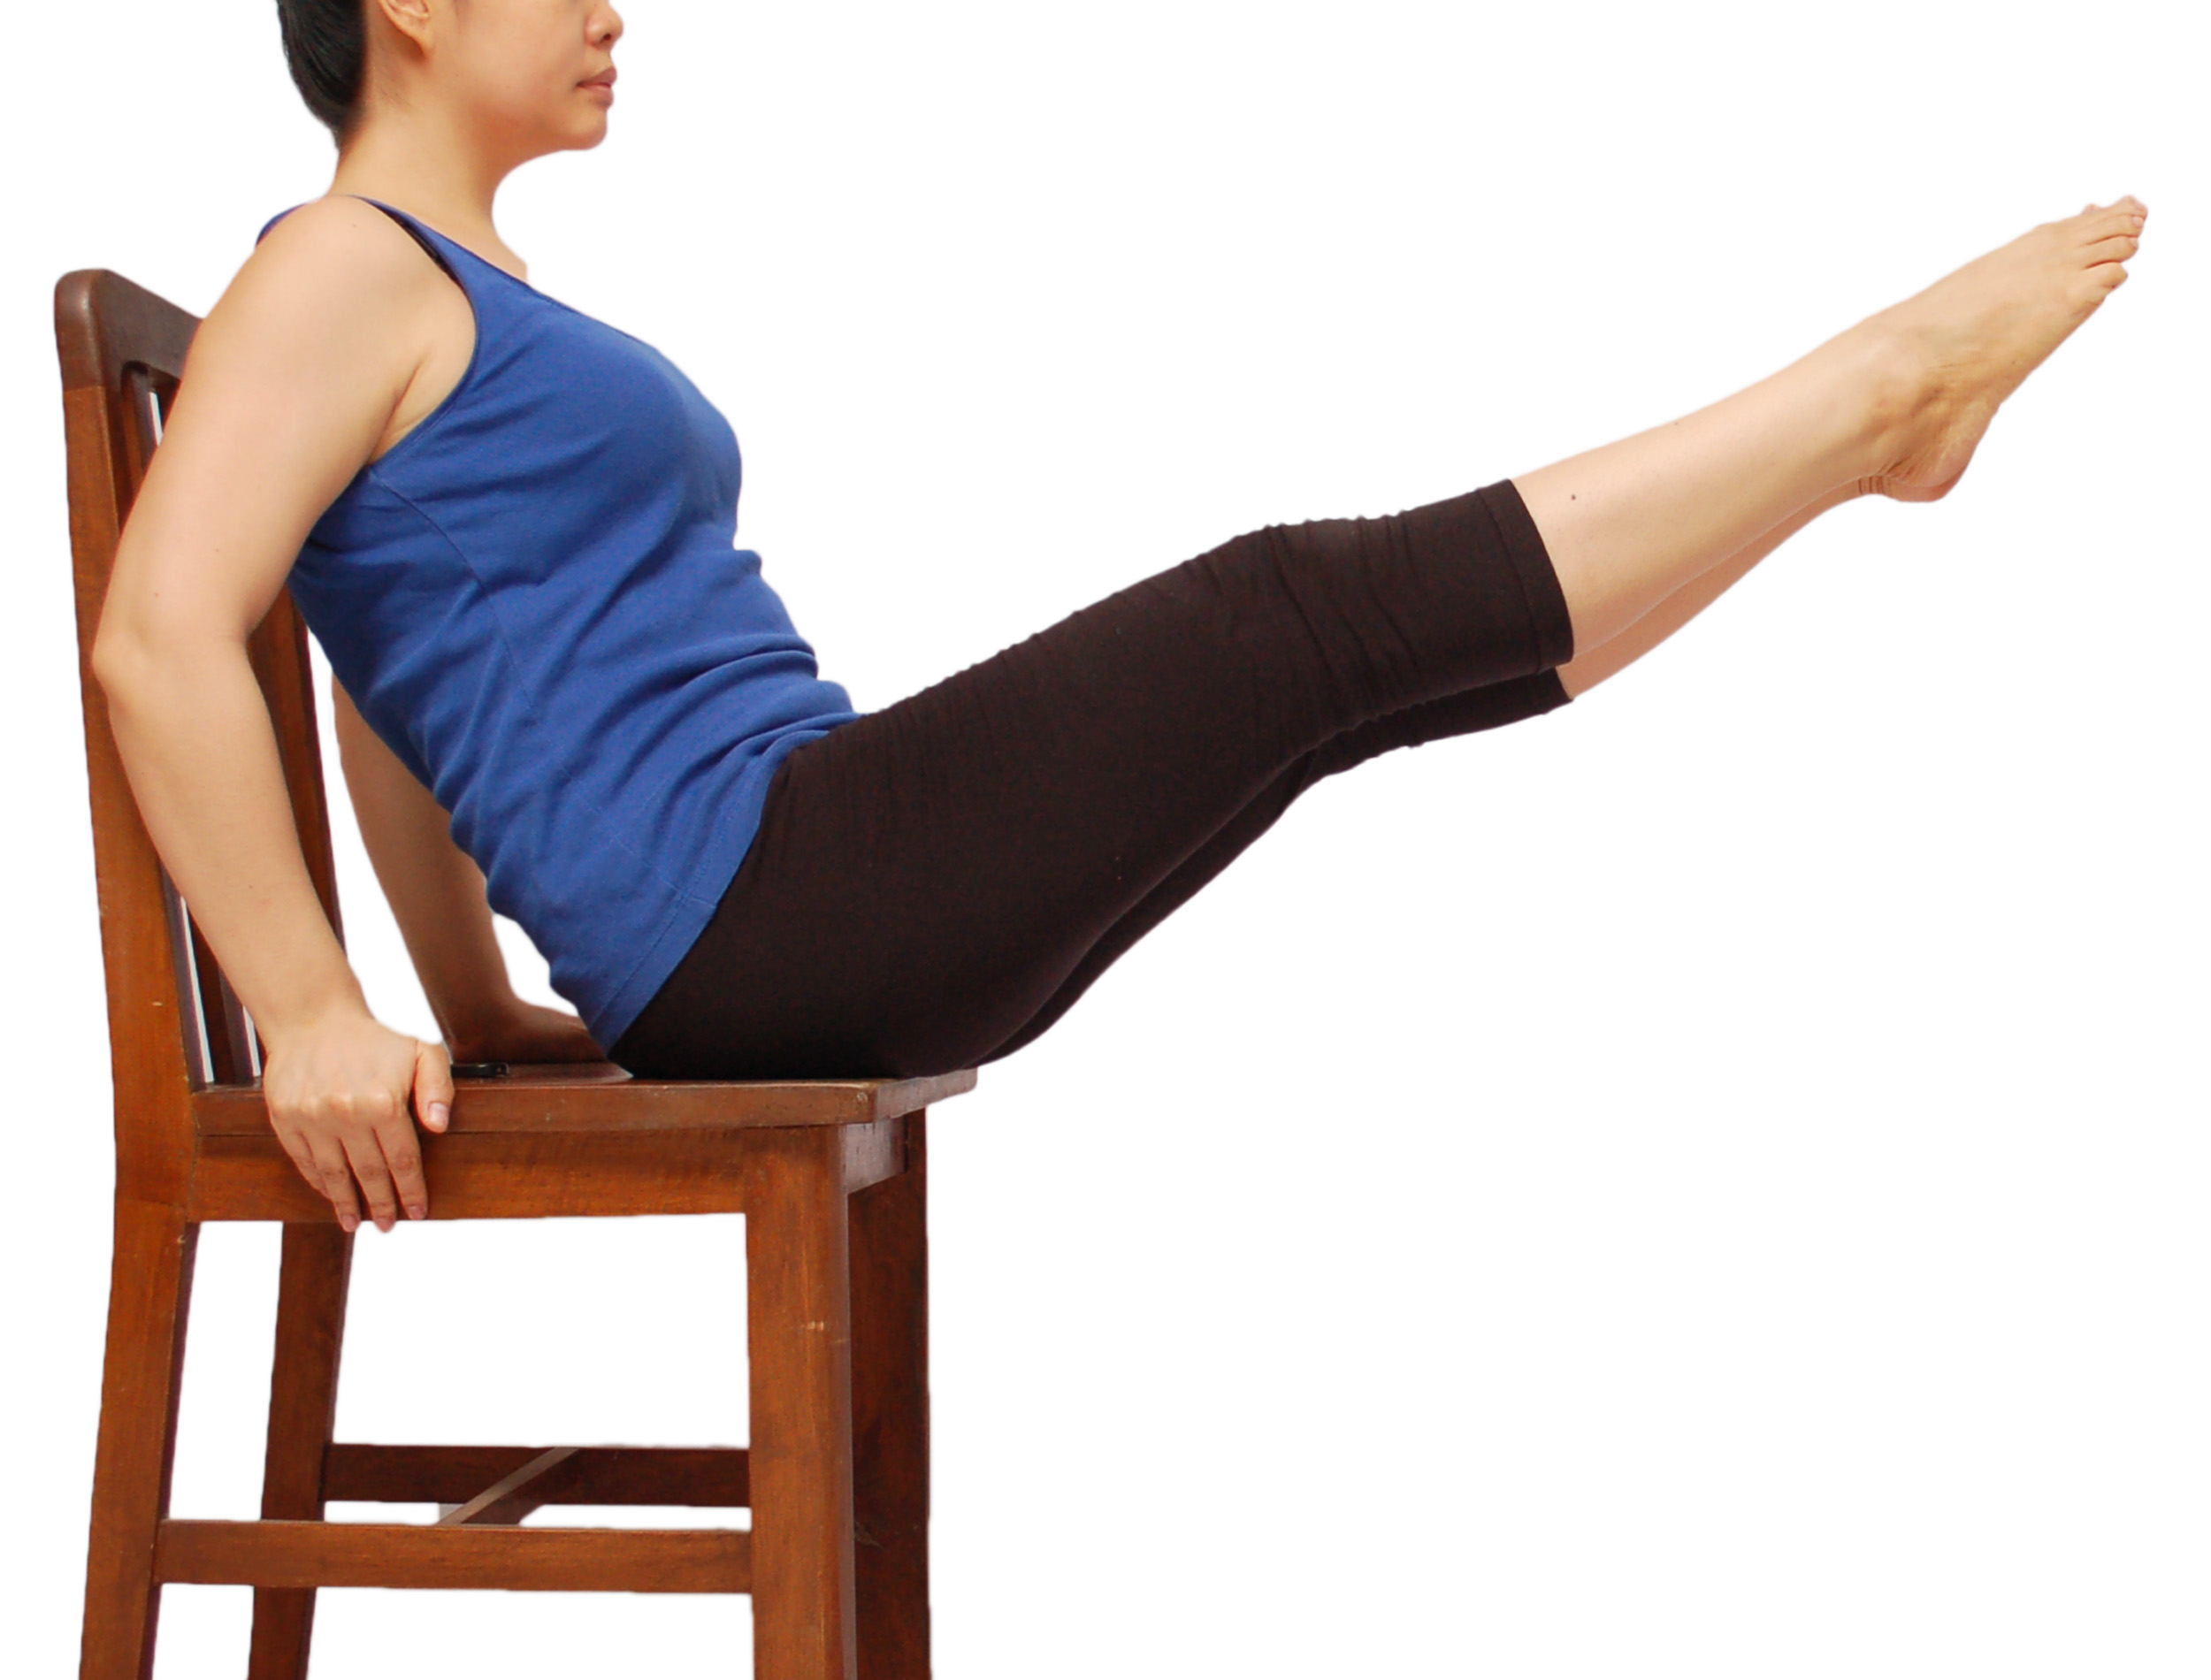 office chair workouts for abs desk home 5 ways to do an workout in a wikihow